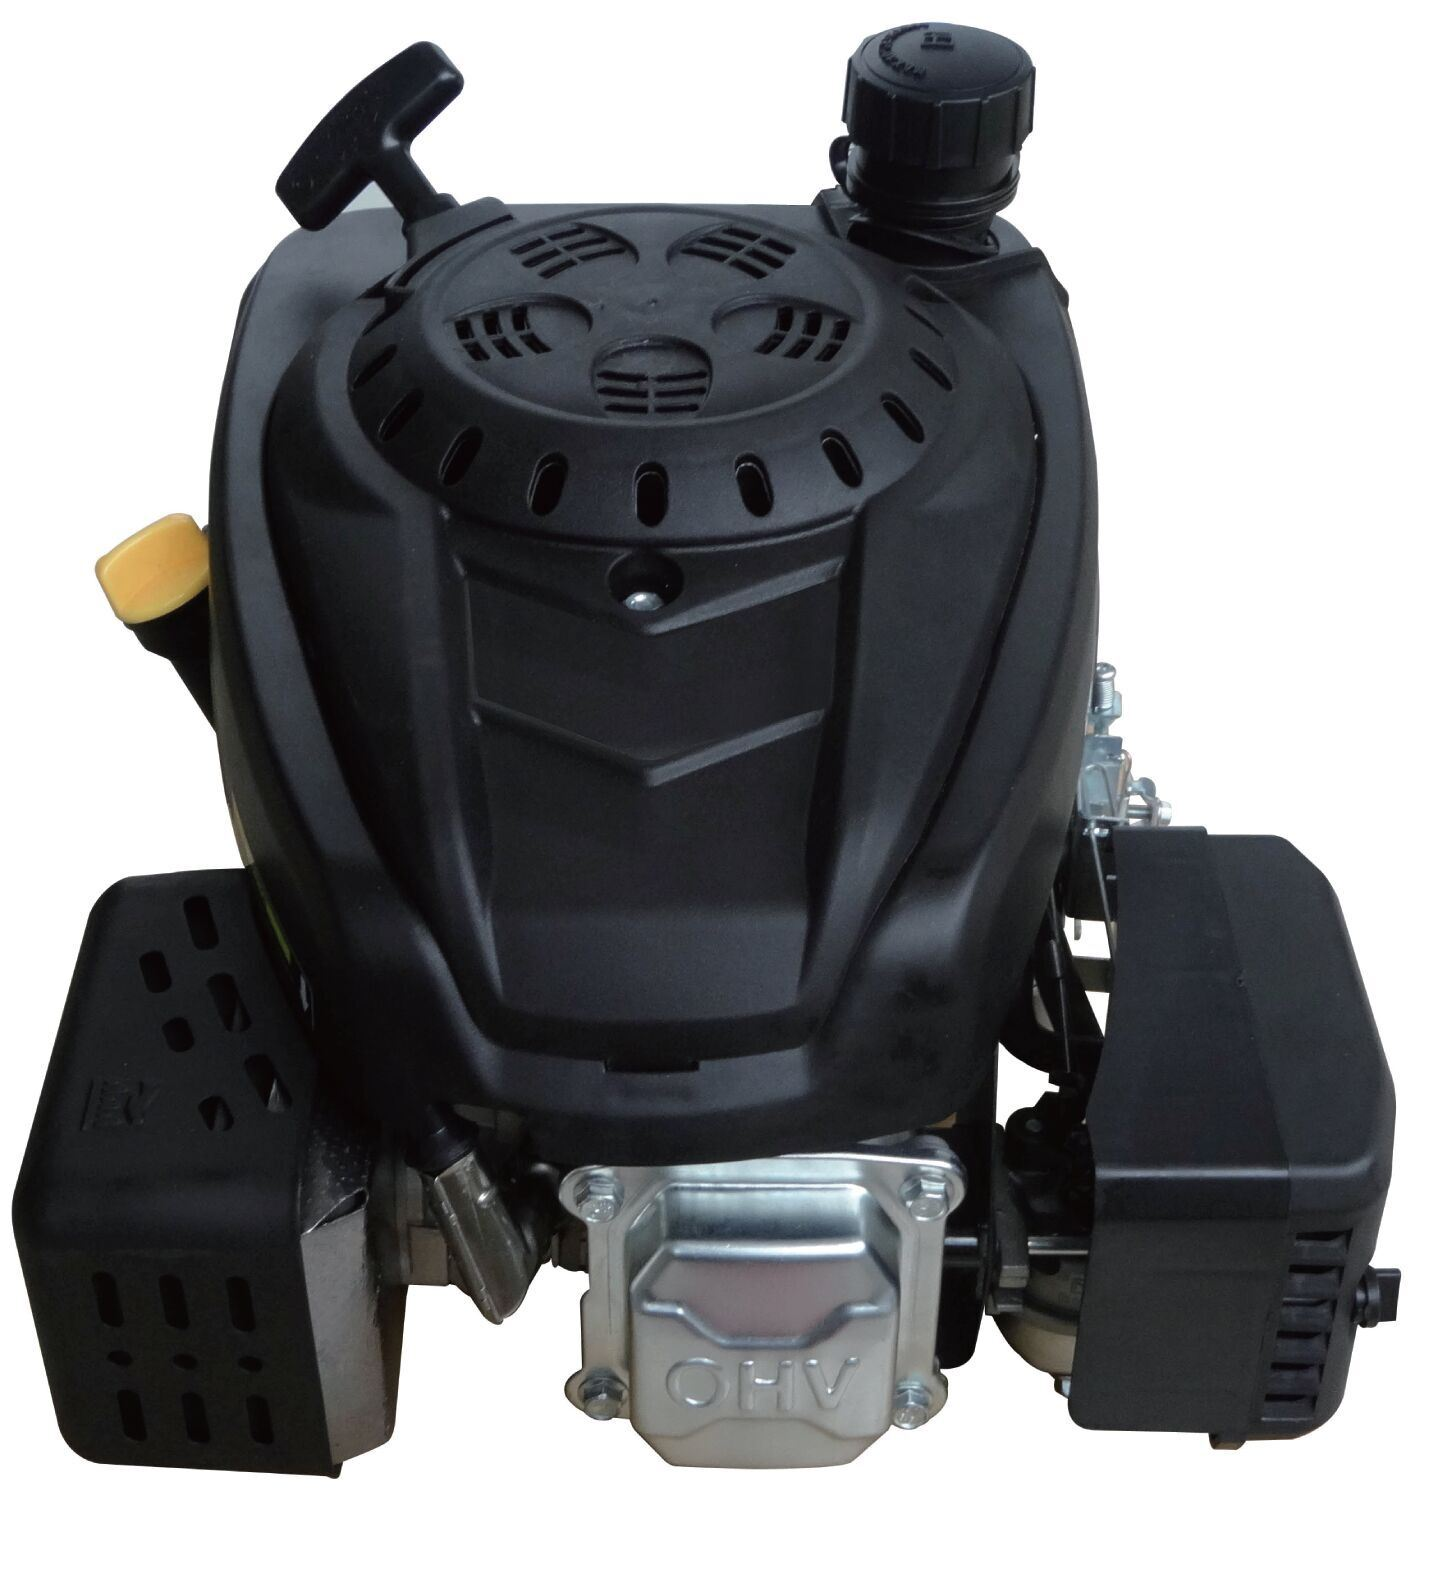 6.5 HP Vertical Shaft Lawn Mower Engine (TV200)